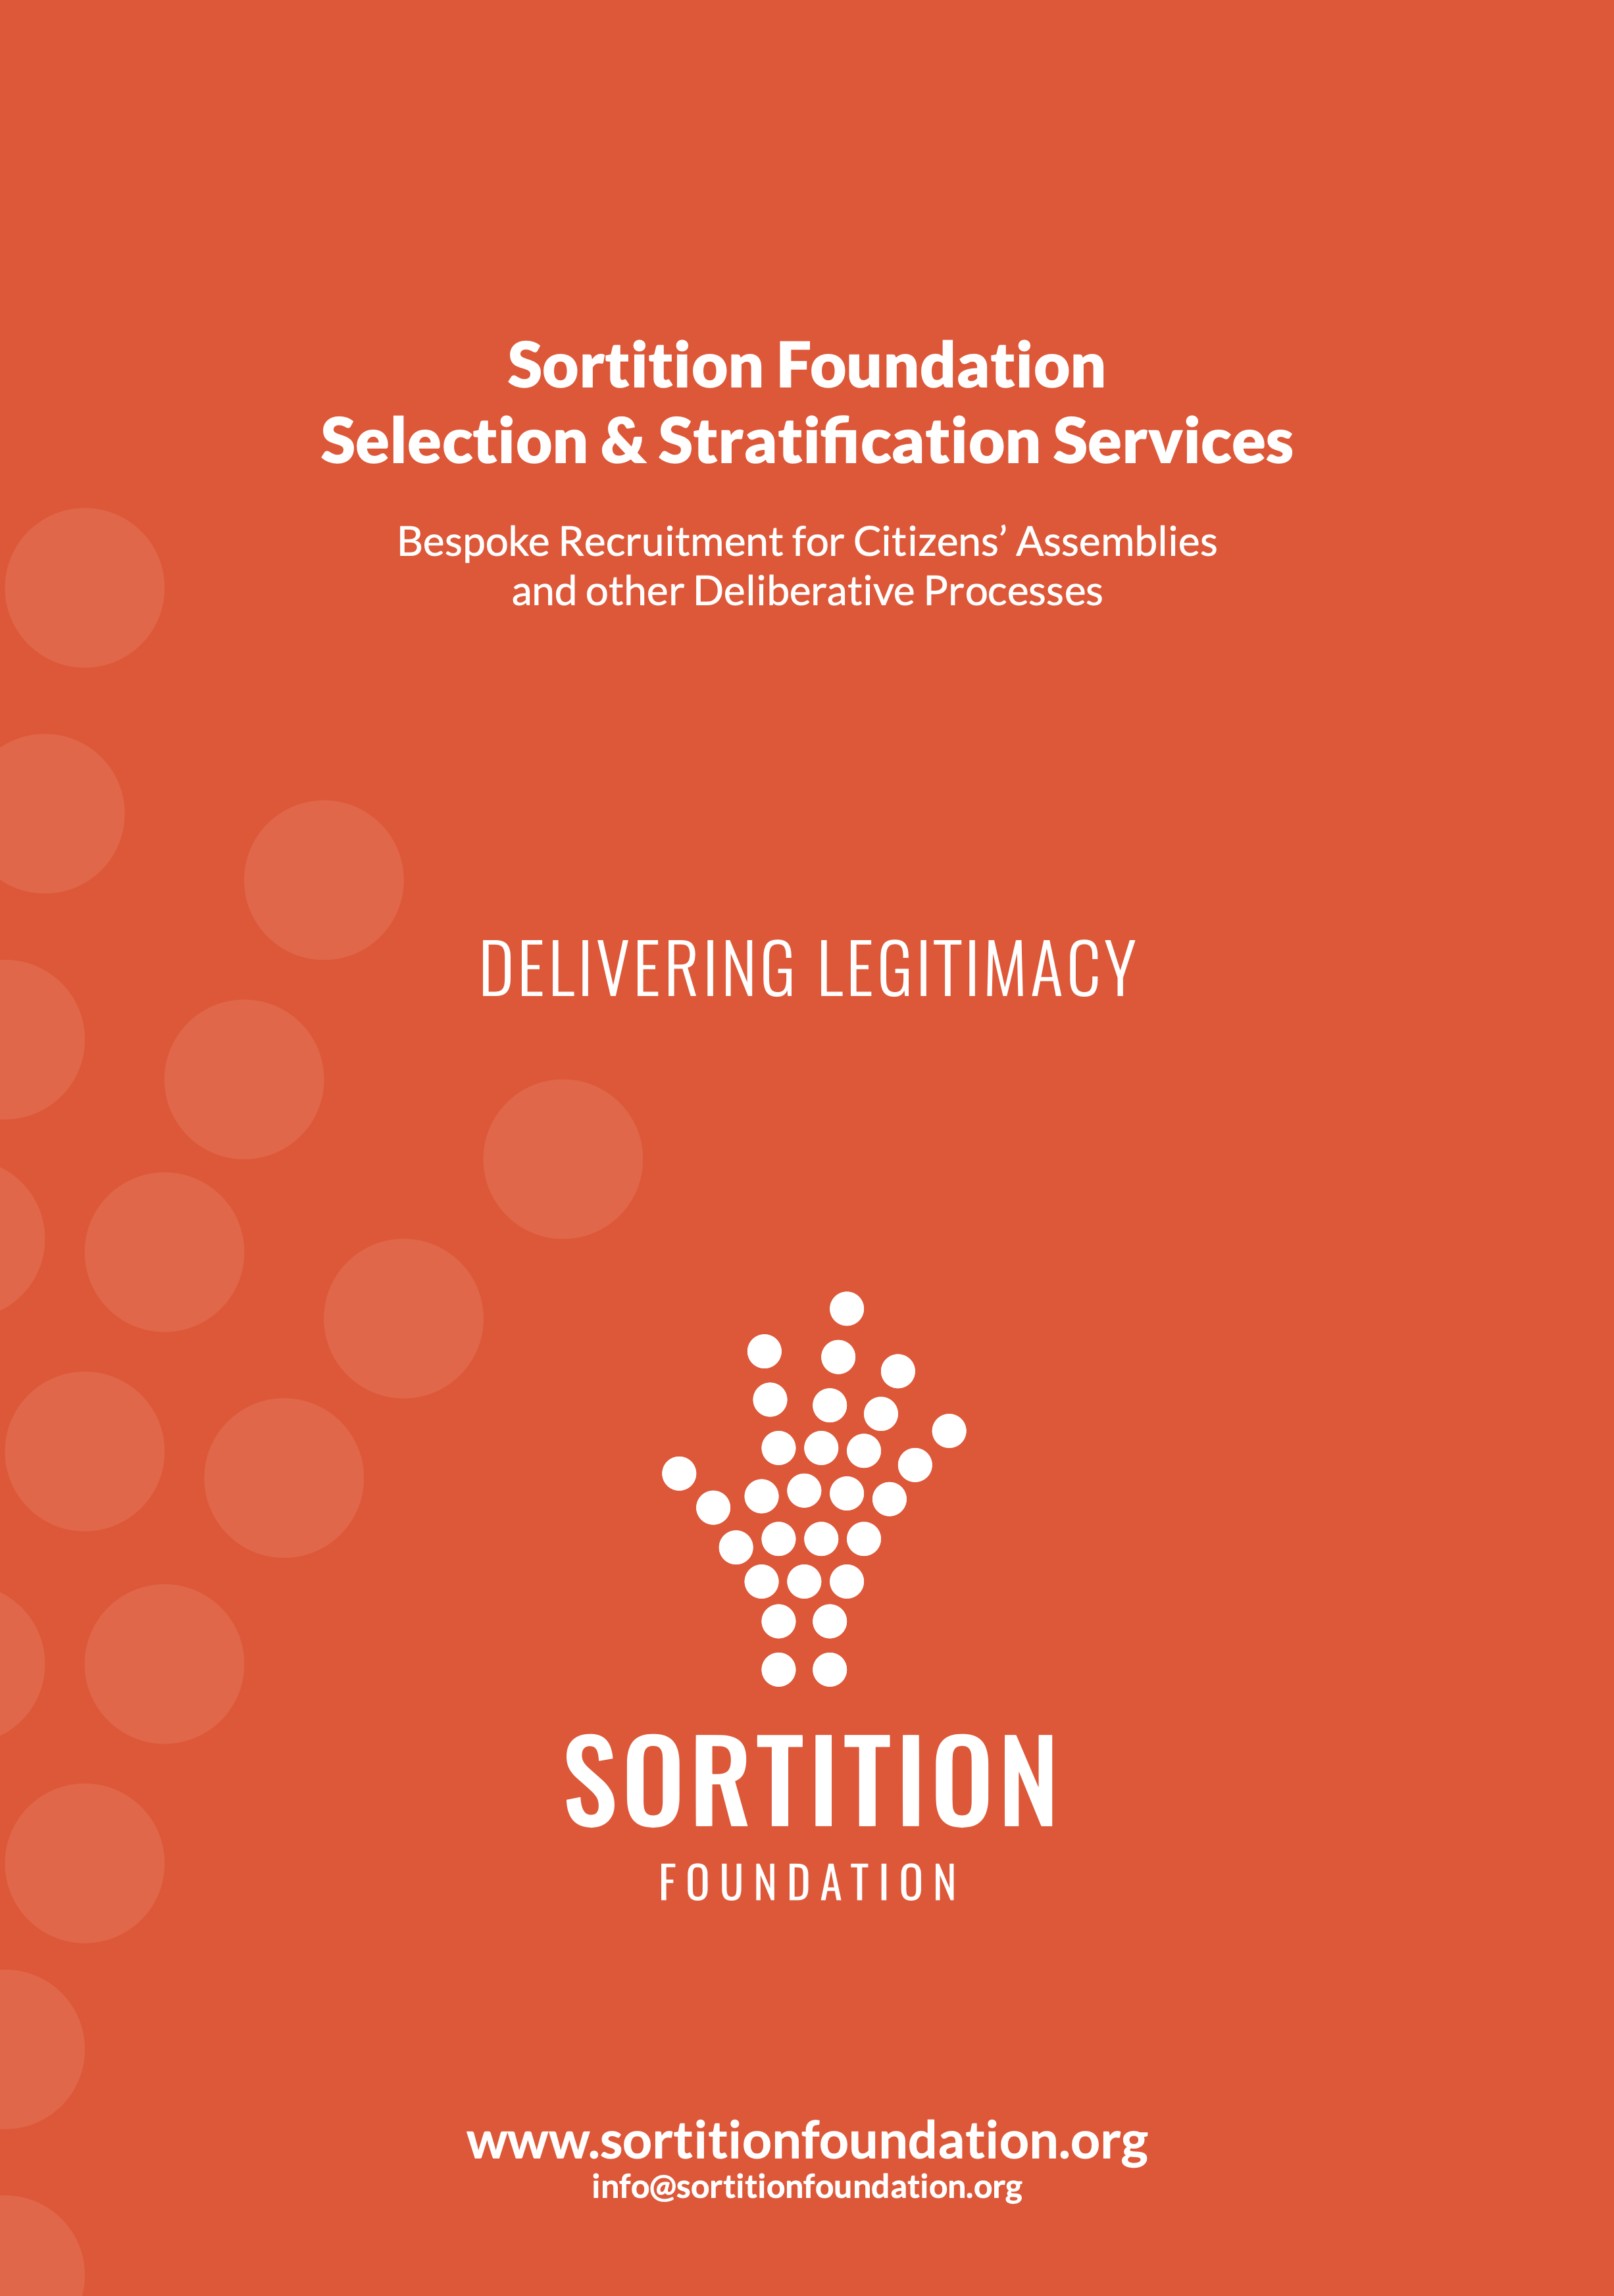 Selection and Stratification Services